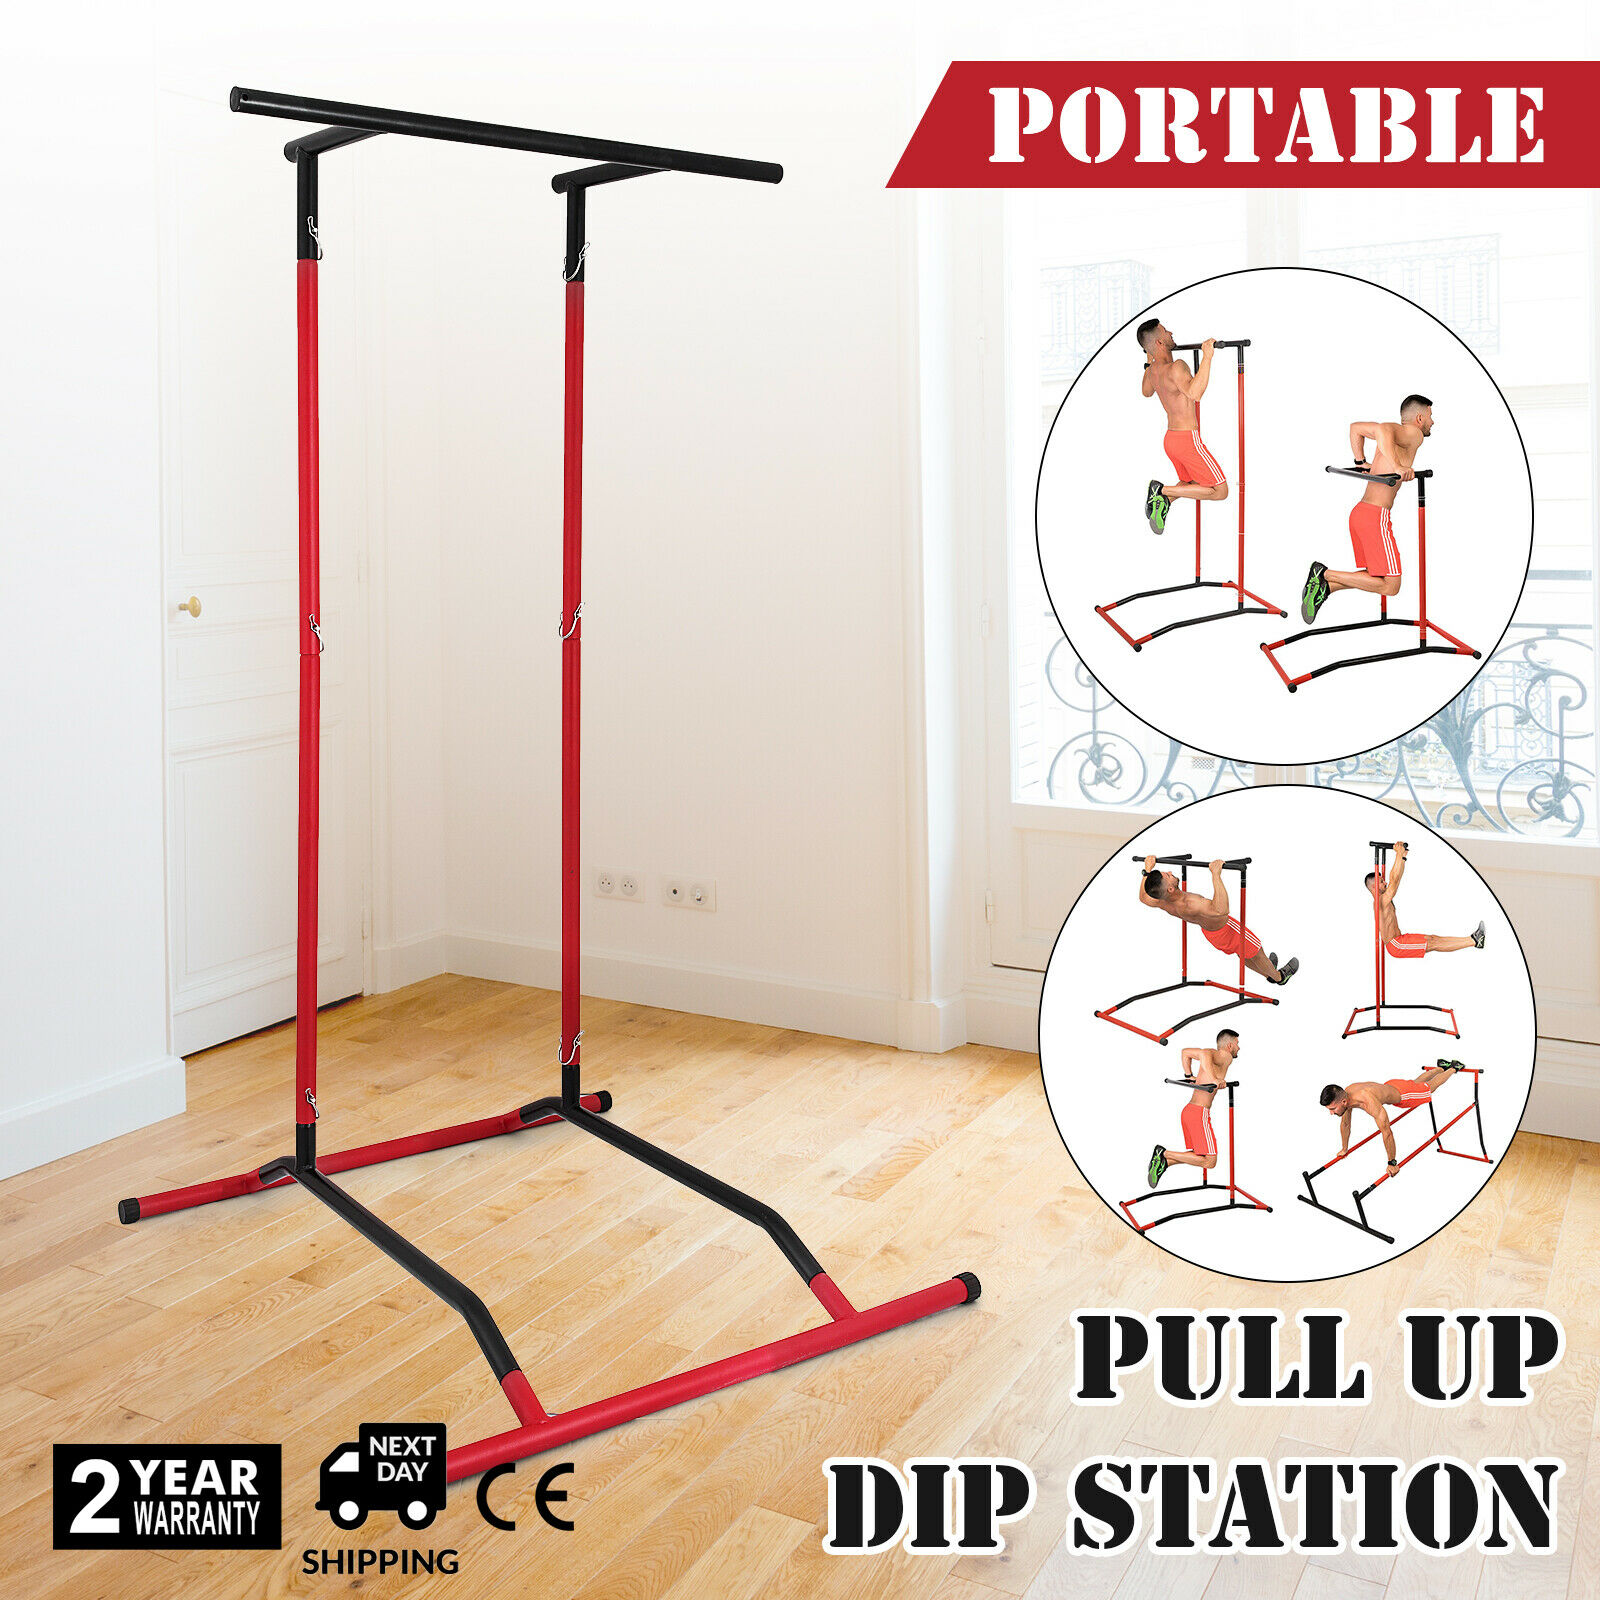 portable-pull-up-dip-station-gym-bar-power-tower-workout-stand-equipment-pro